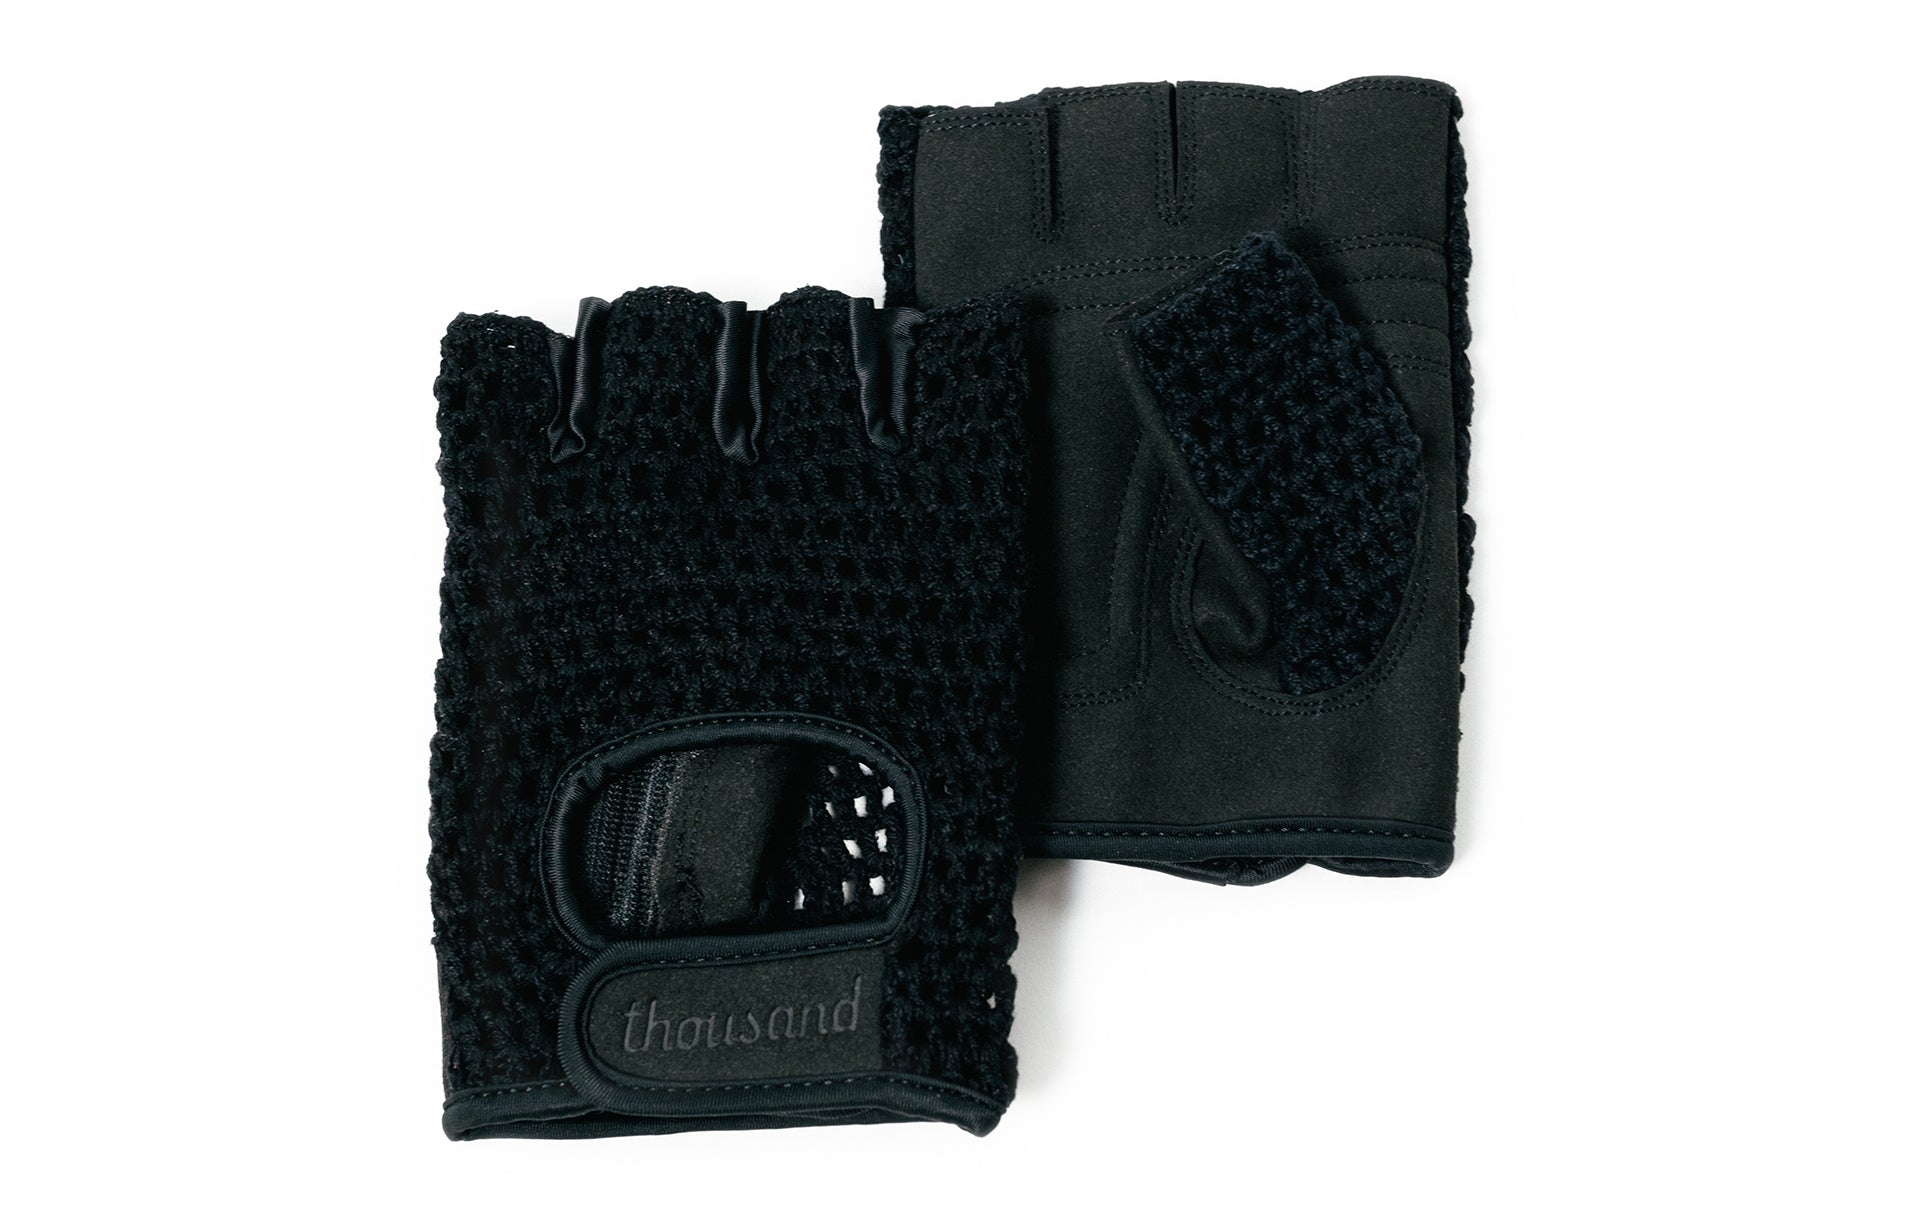 Courier Bike Gloves